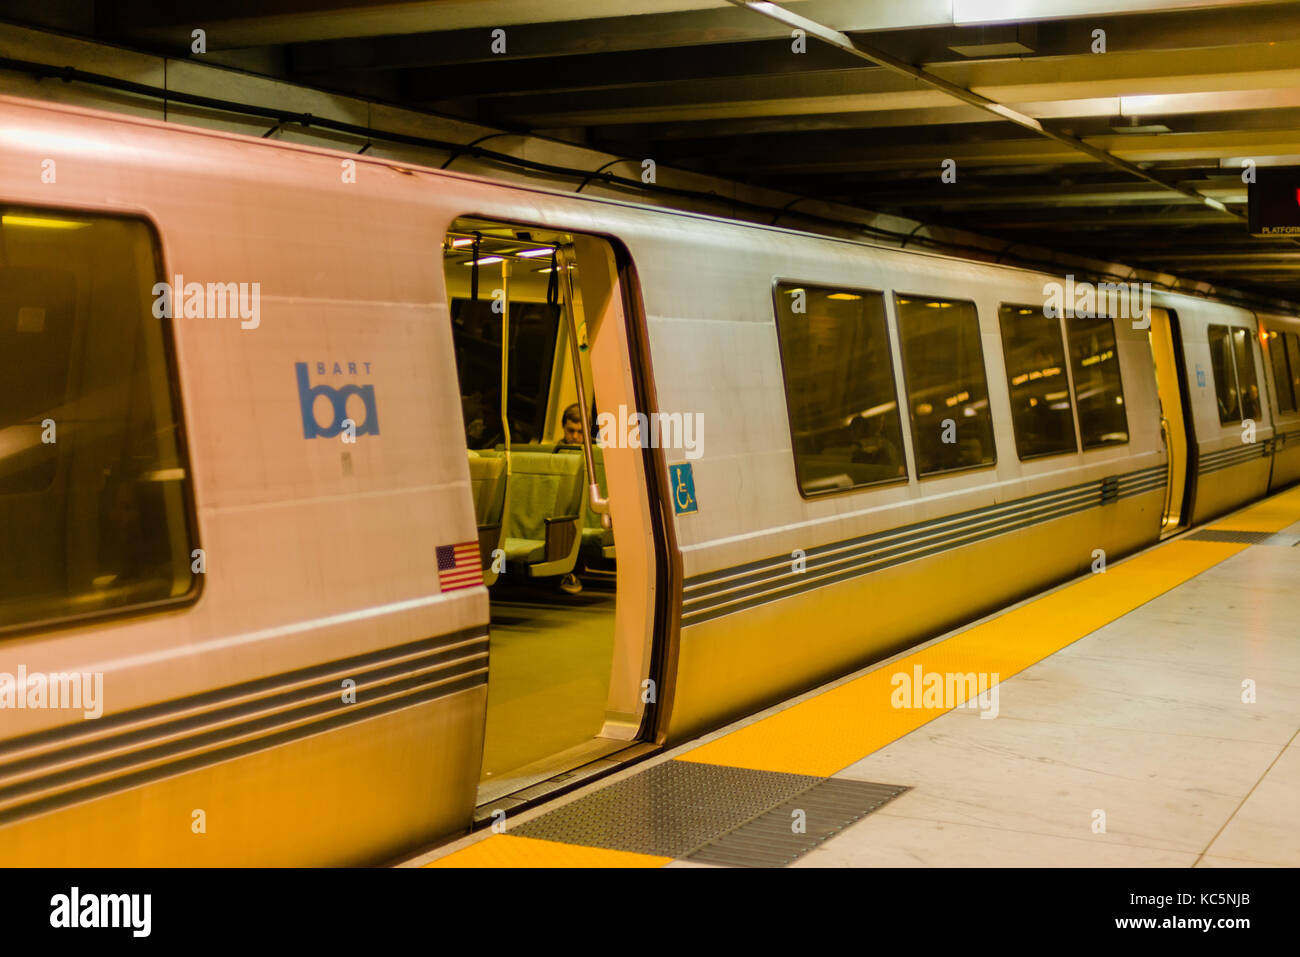 BART (Bay Area Rapid Transit) train, San Francisco, California - Stock Image